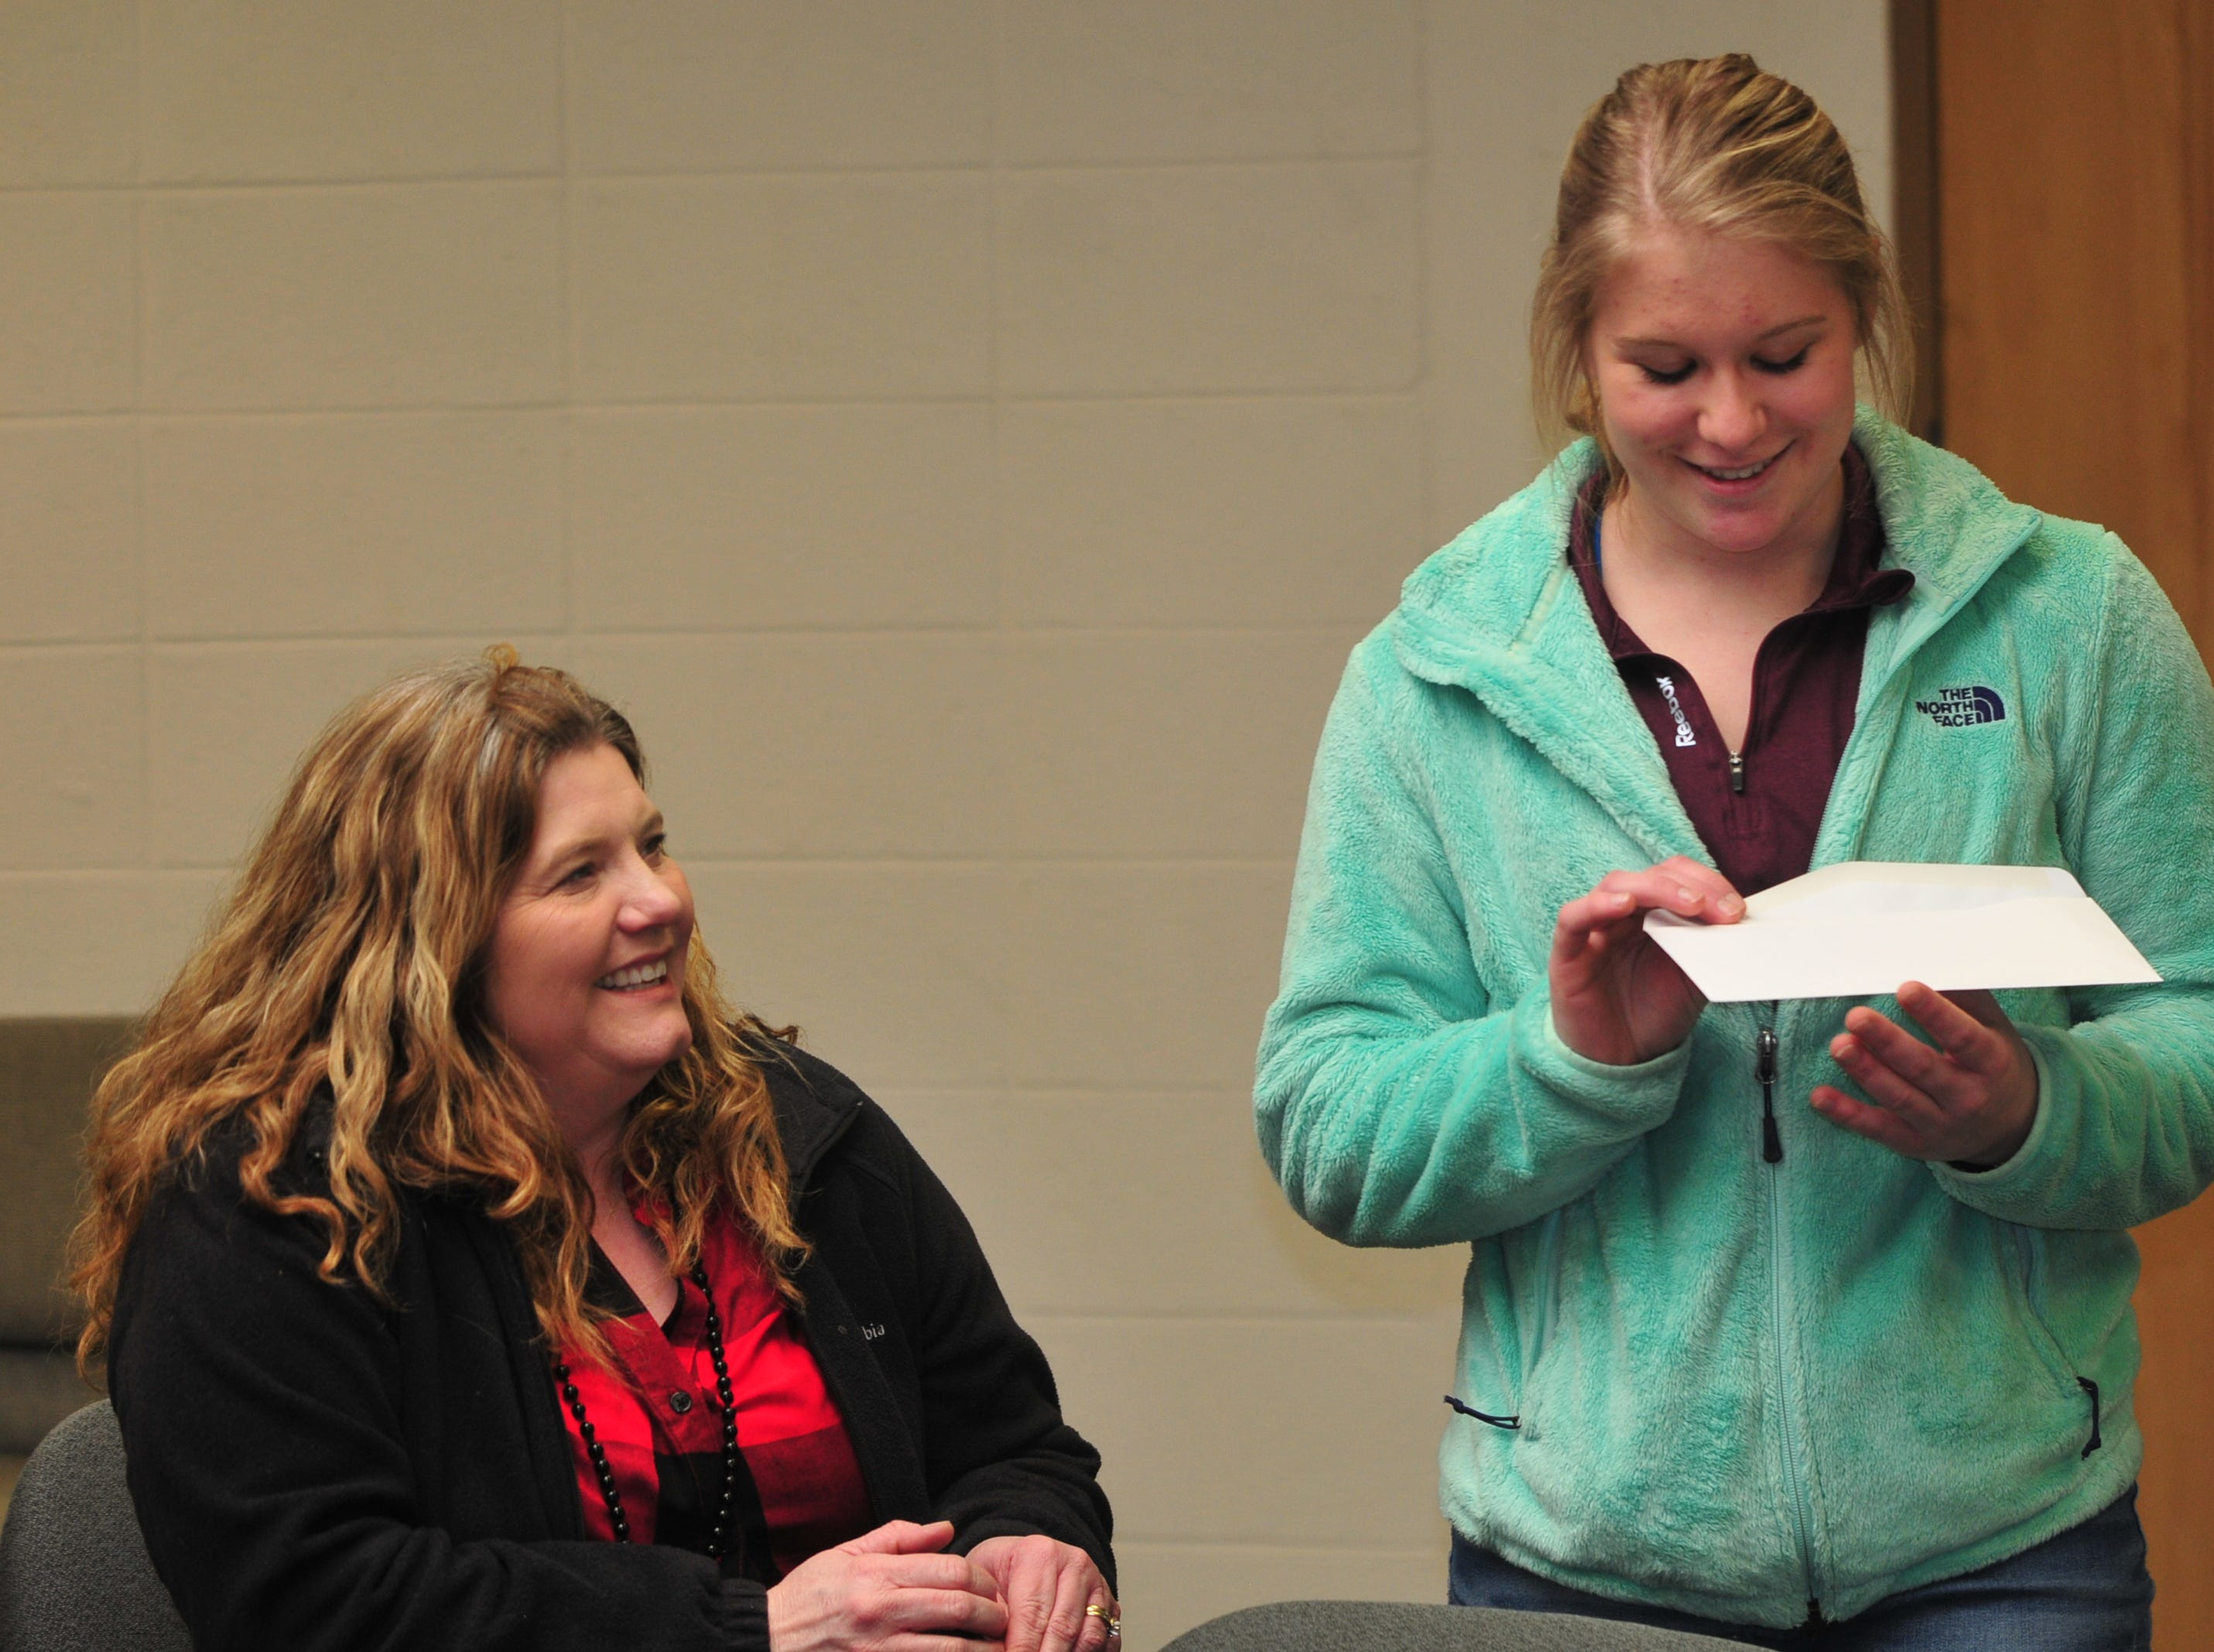 Centerville High School senior Molly Coomes, right, with mother Renee Westover, after Coomes learned that she is a recipient of the Wayne County Foundation's Lily Endowment Community Scholarship at Centerville High School Tuesday, Dec. 11, 2018.